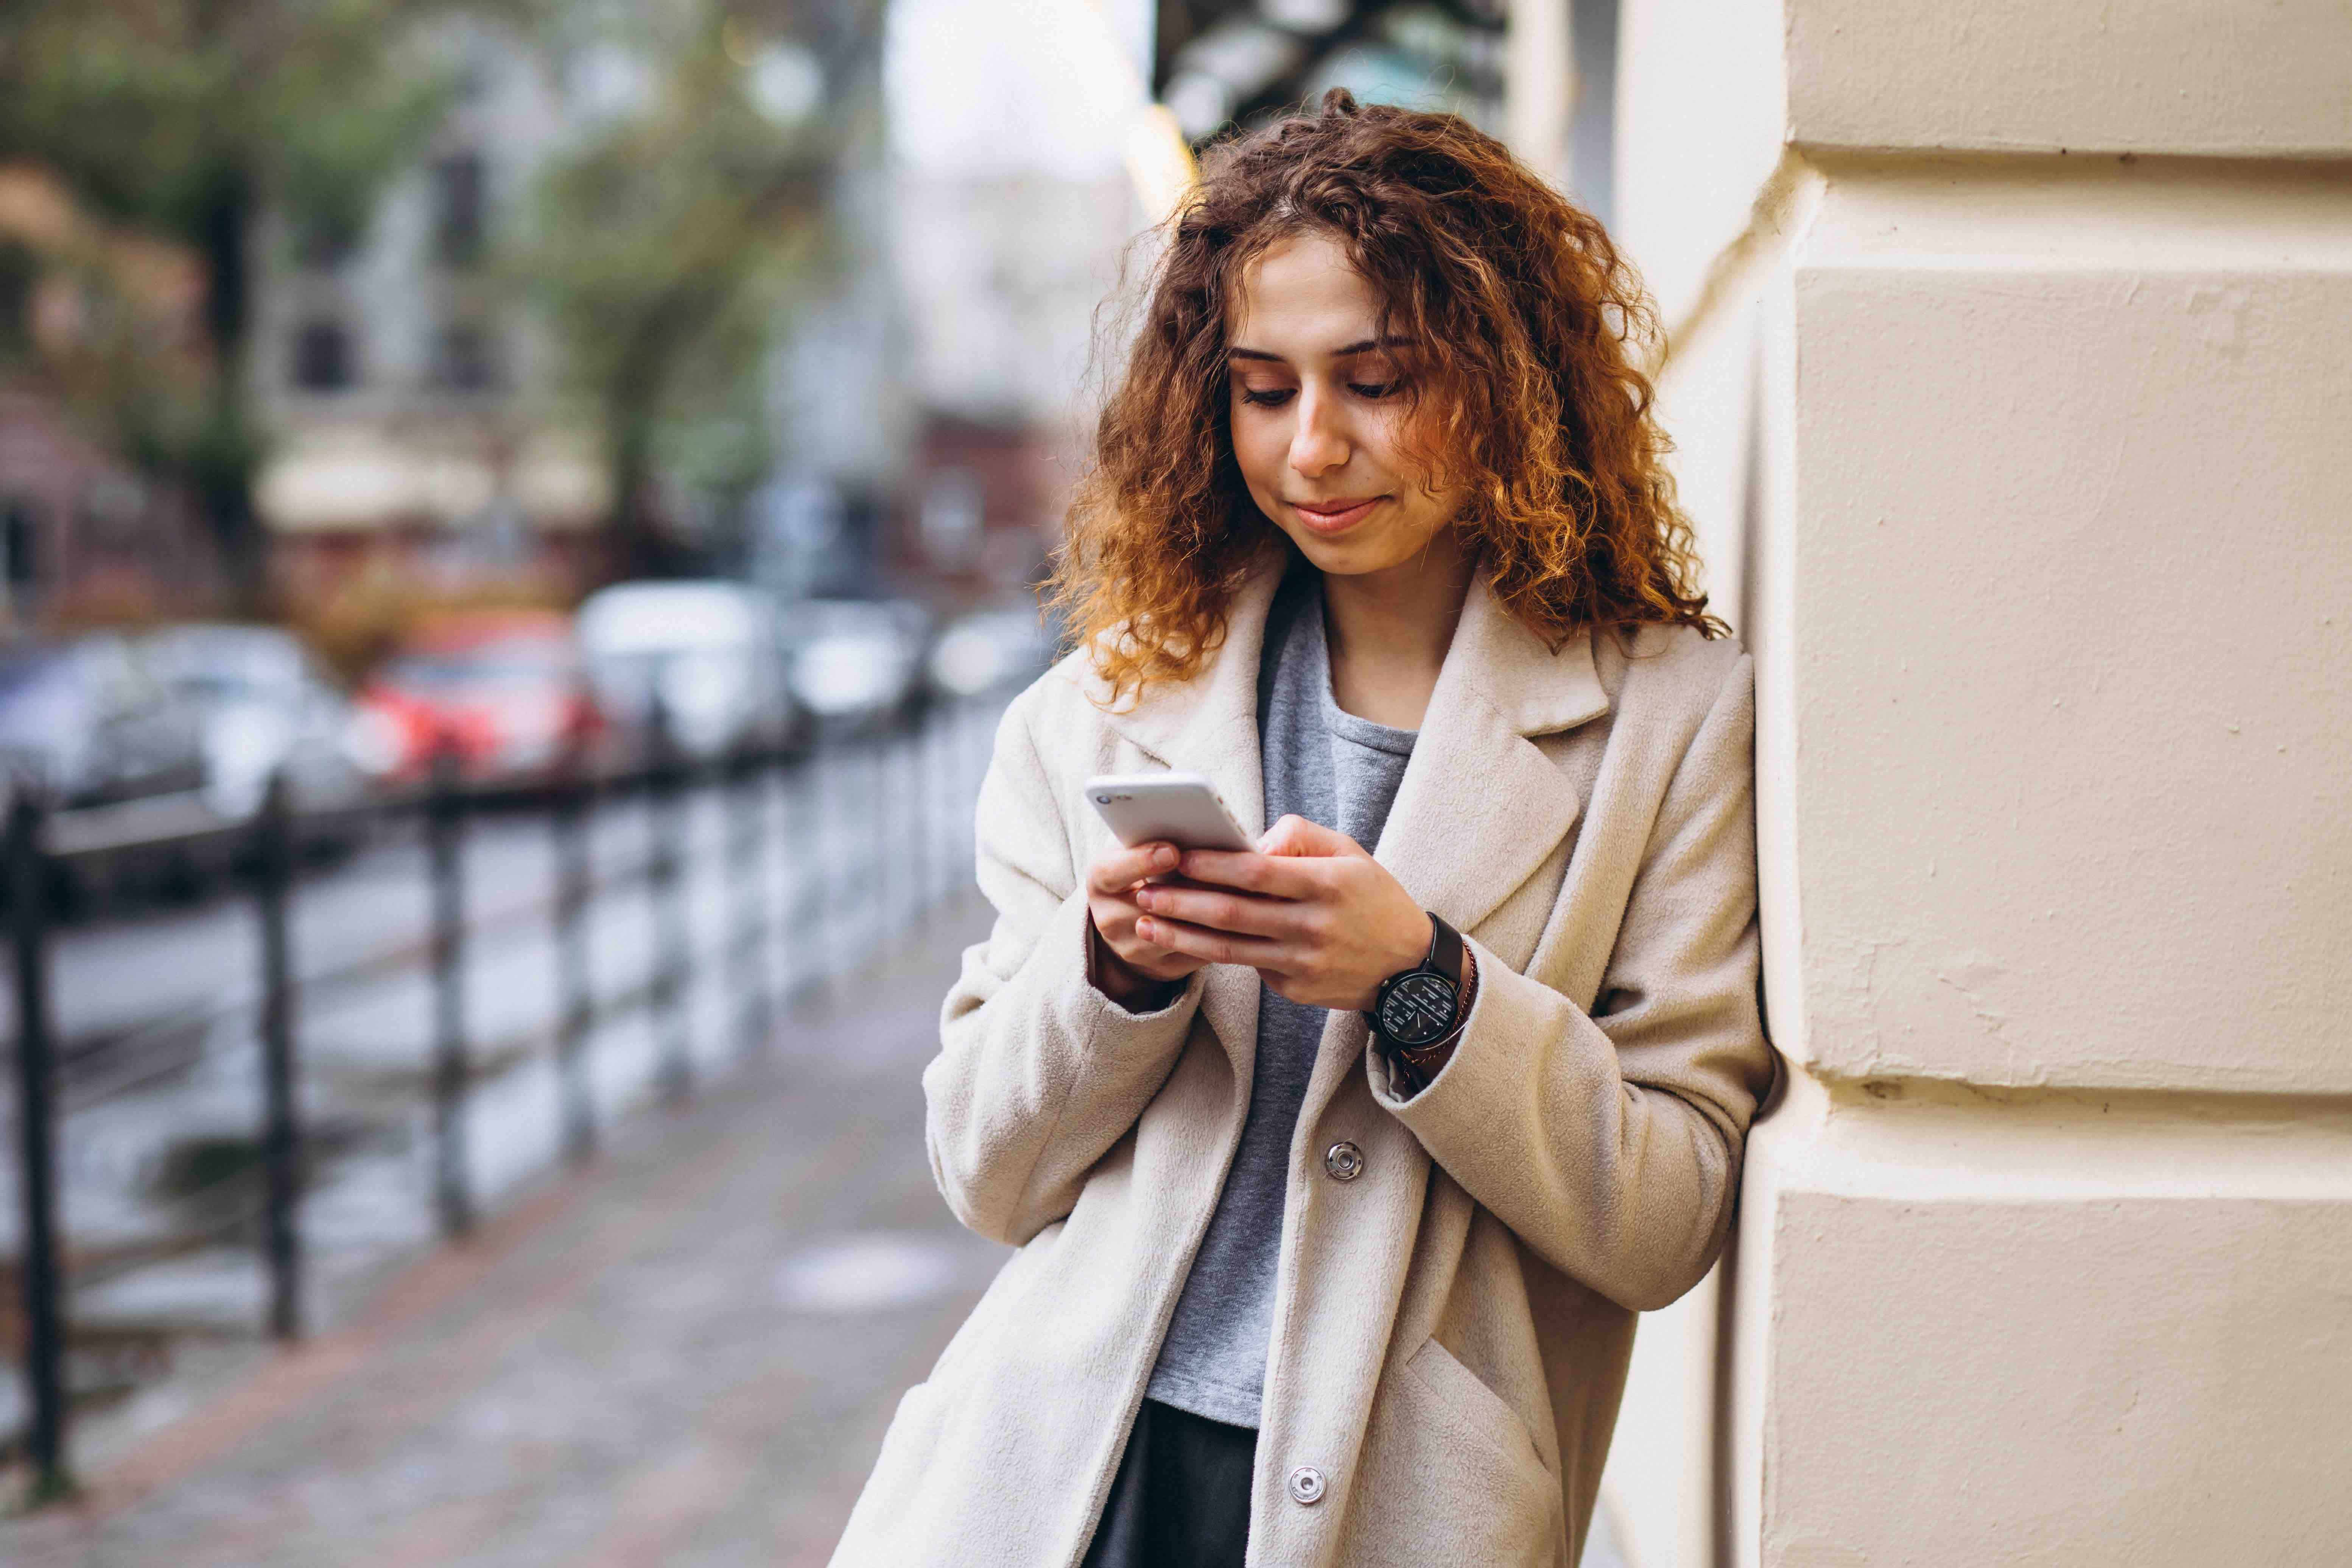 Benefits of sms messaging